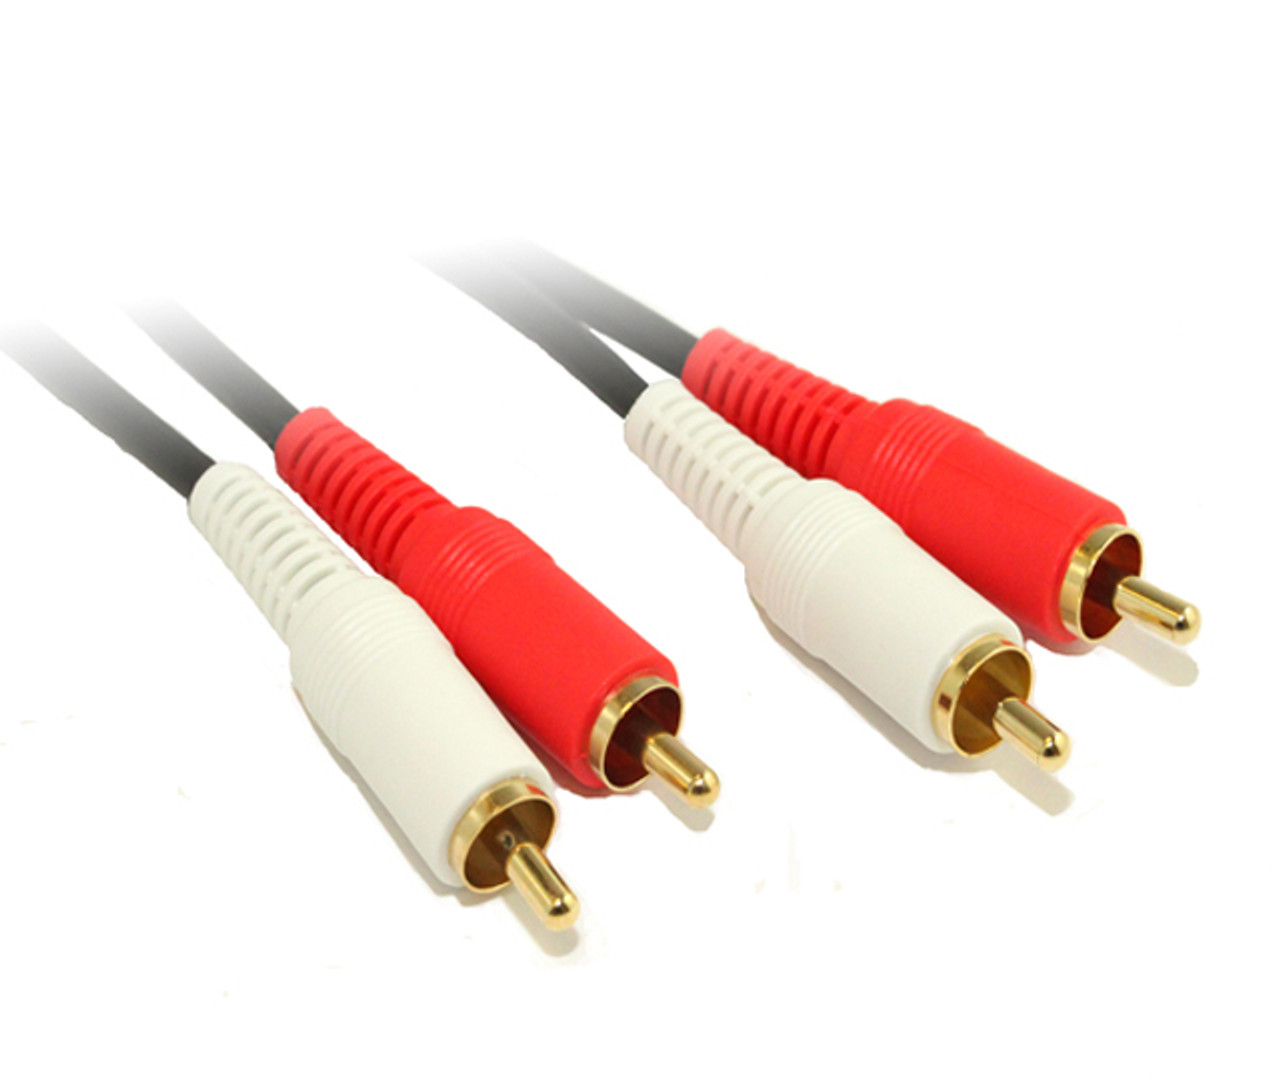 Product image for 5M 2RCA to 2RCA Audio Cable OFC | CX Computer Superstore